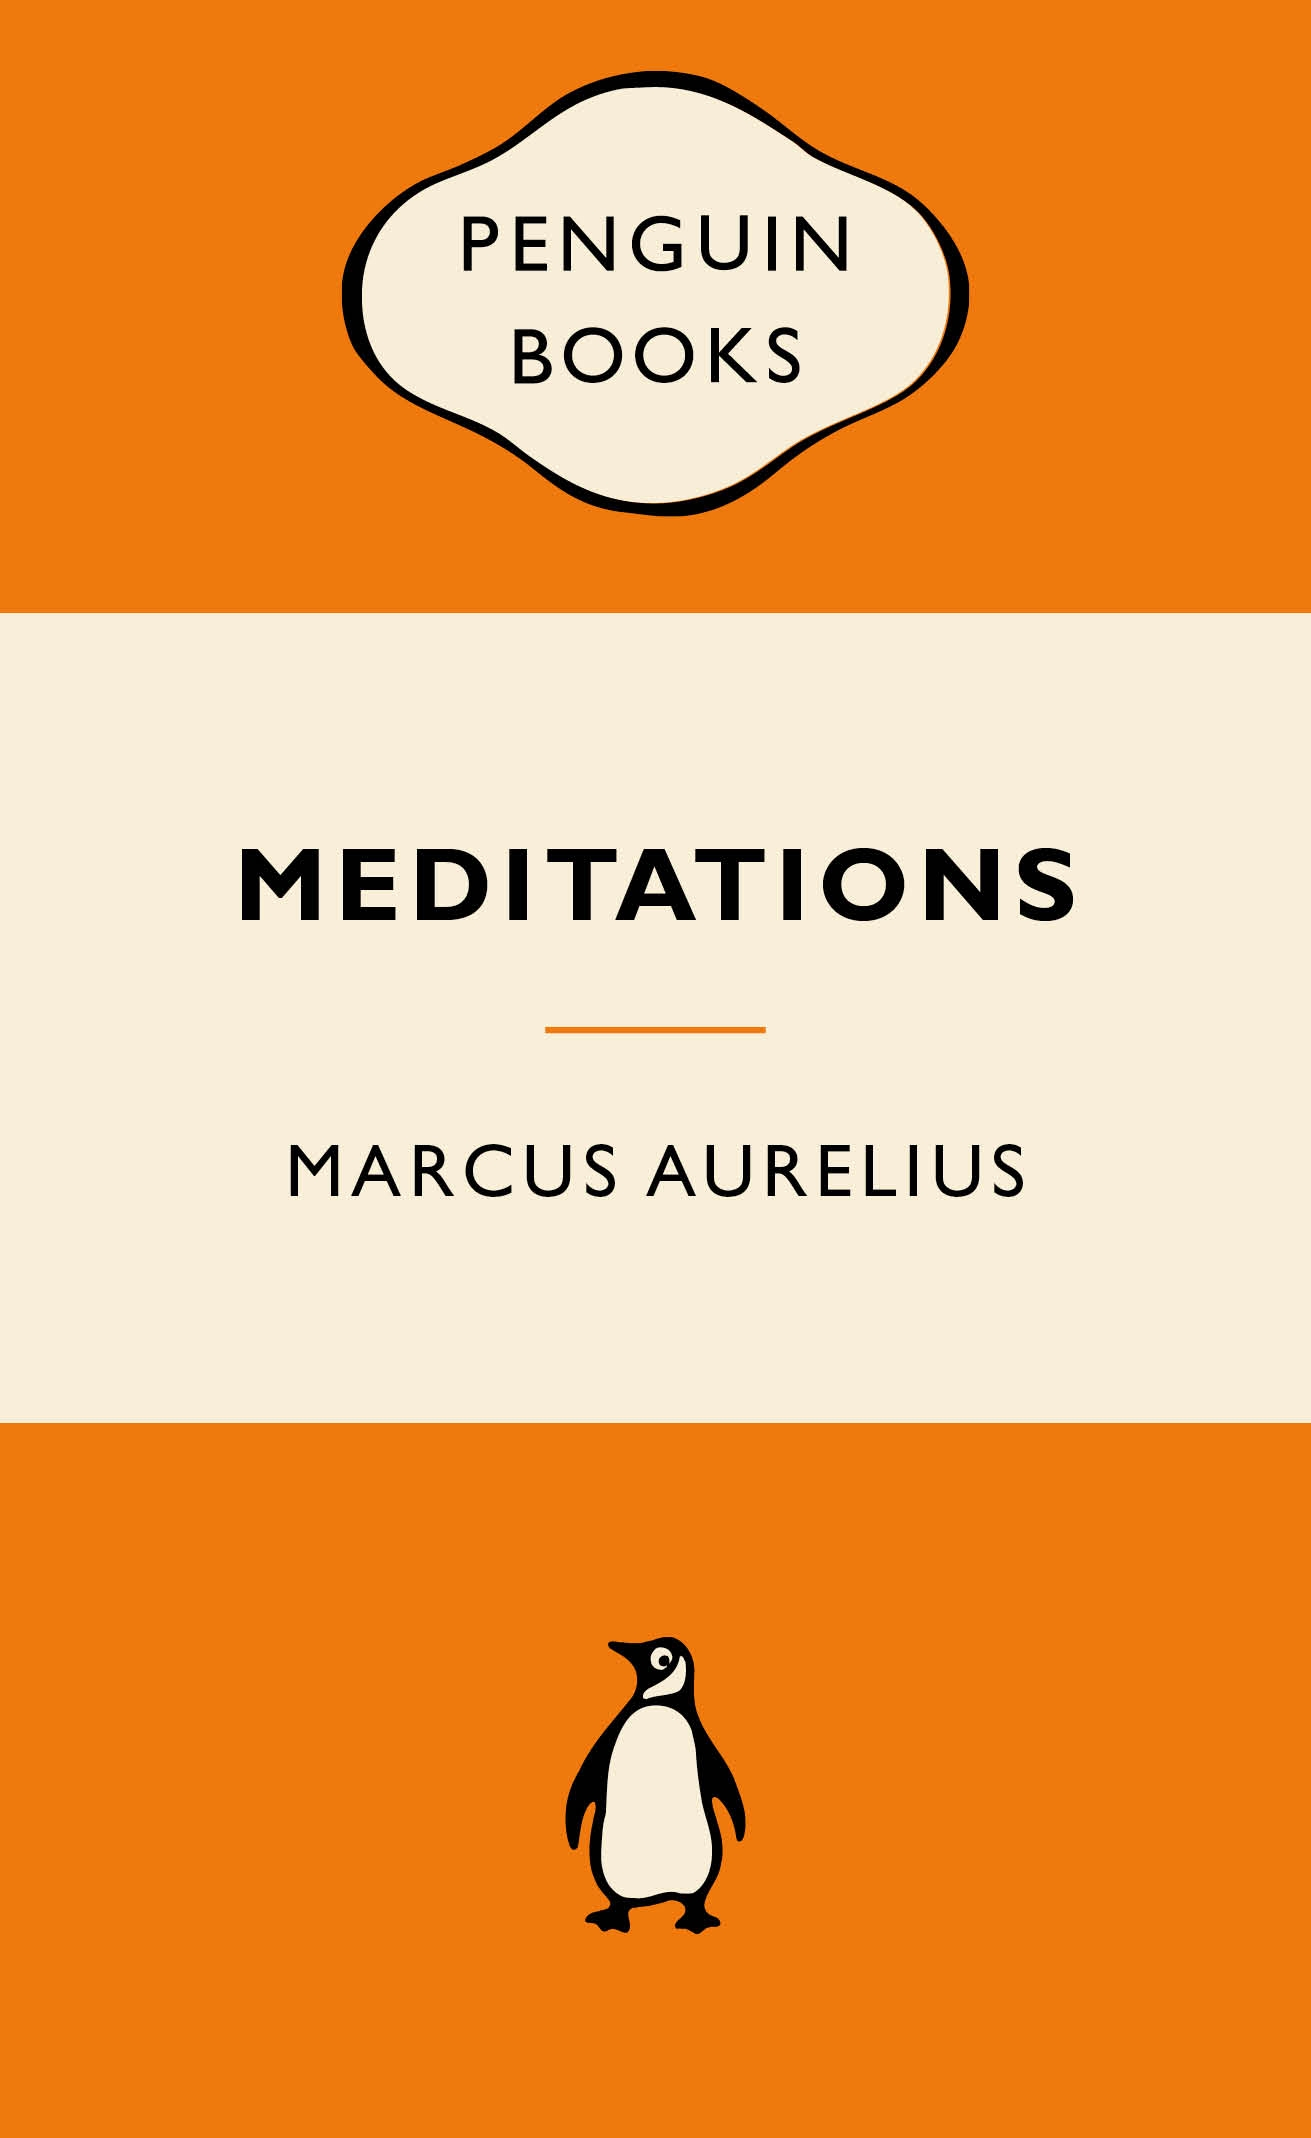 These spiritual reflections of Roman emperor Marcus Aurelius (AD 121-180) show a leader trying to make sense of himself and the universe, and cover diverse topics such as the question of virtue, human rationality and the nature of the gods. In developing his personal beliefs, Aurelius created one of the greatest works of philosophy: a series of wise and practical aphorisms that have been consulted by statesmen, thinkers and everyday philosophers for almost two thousand years.